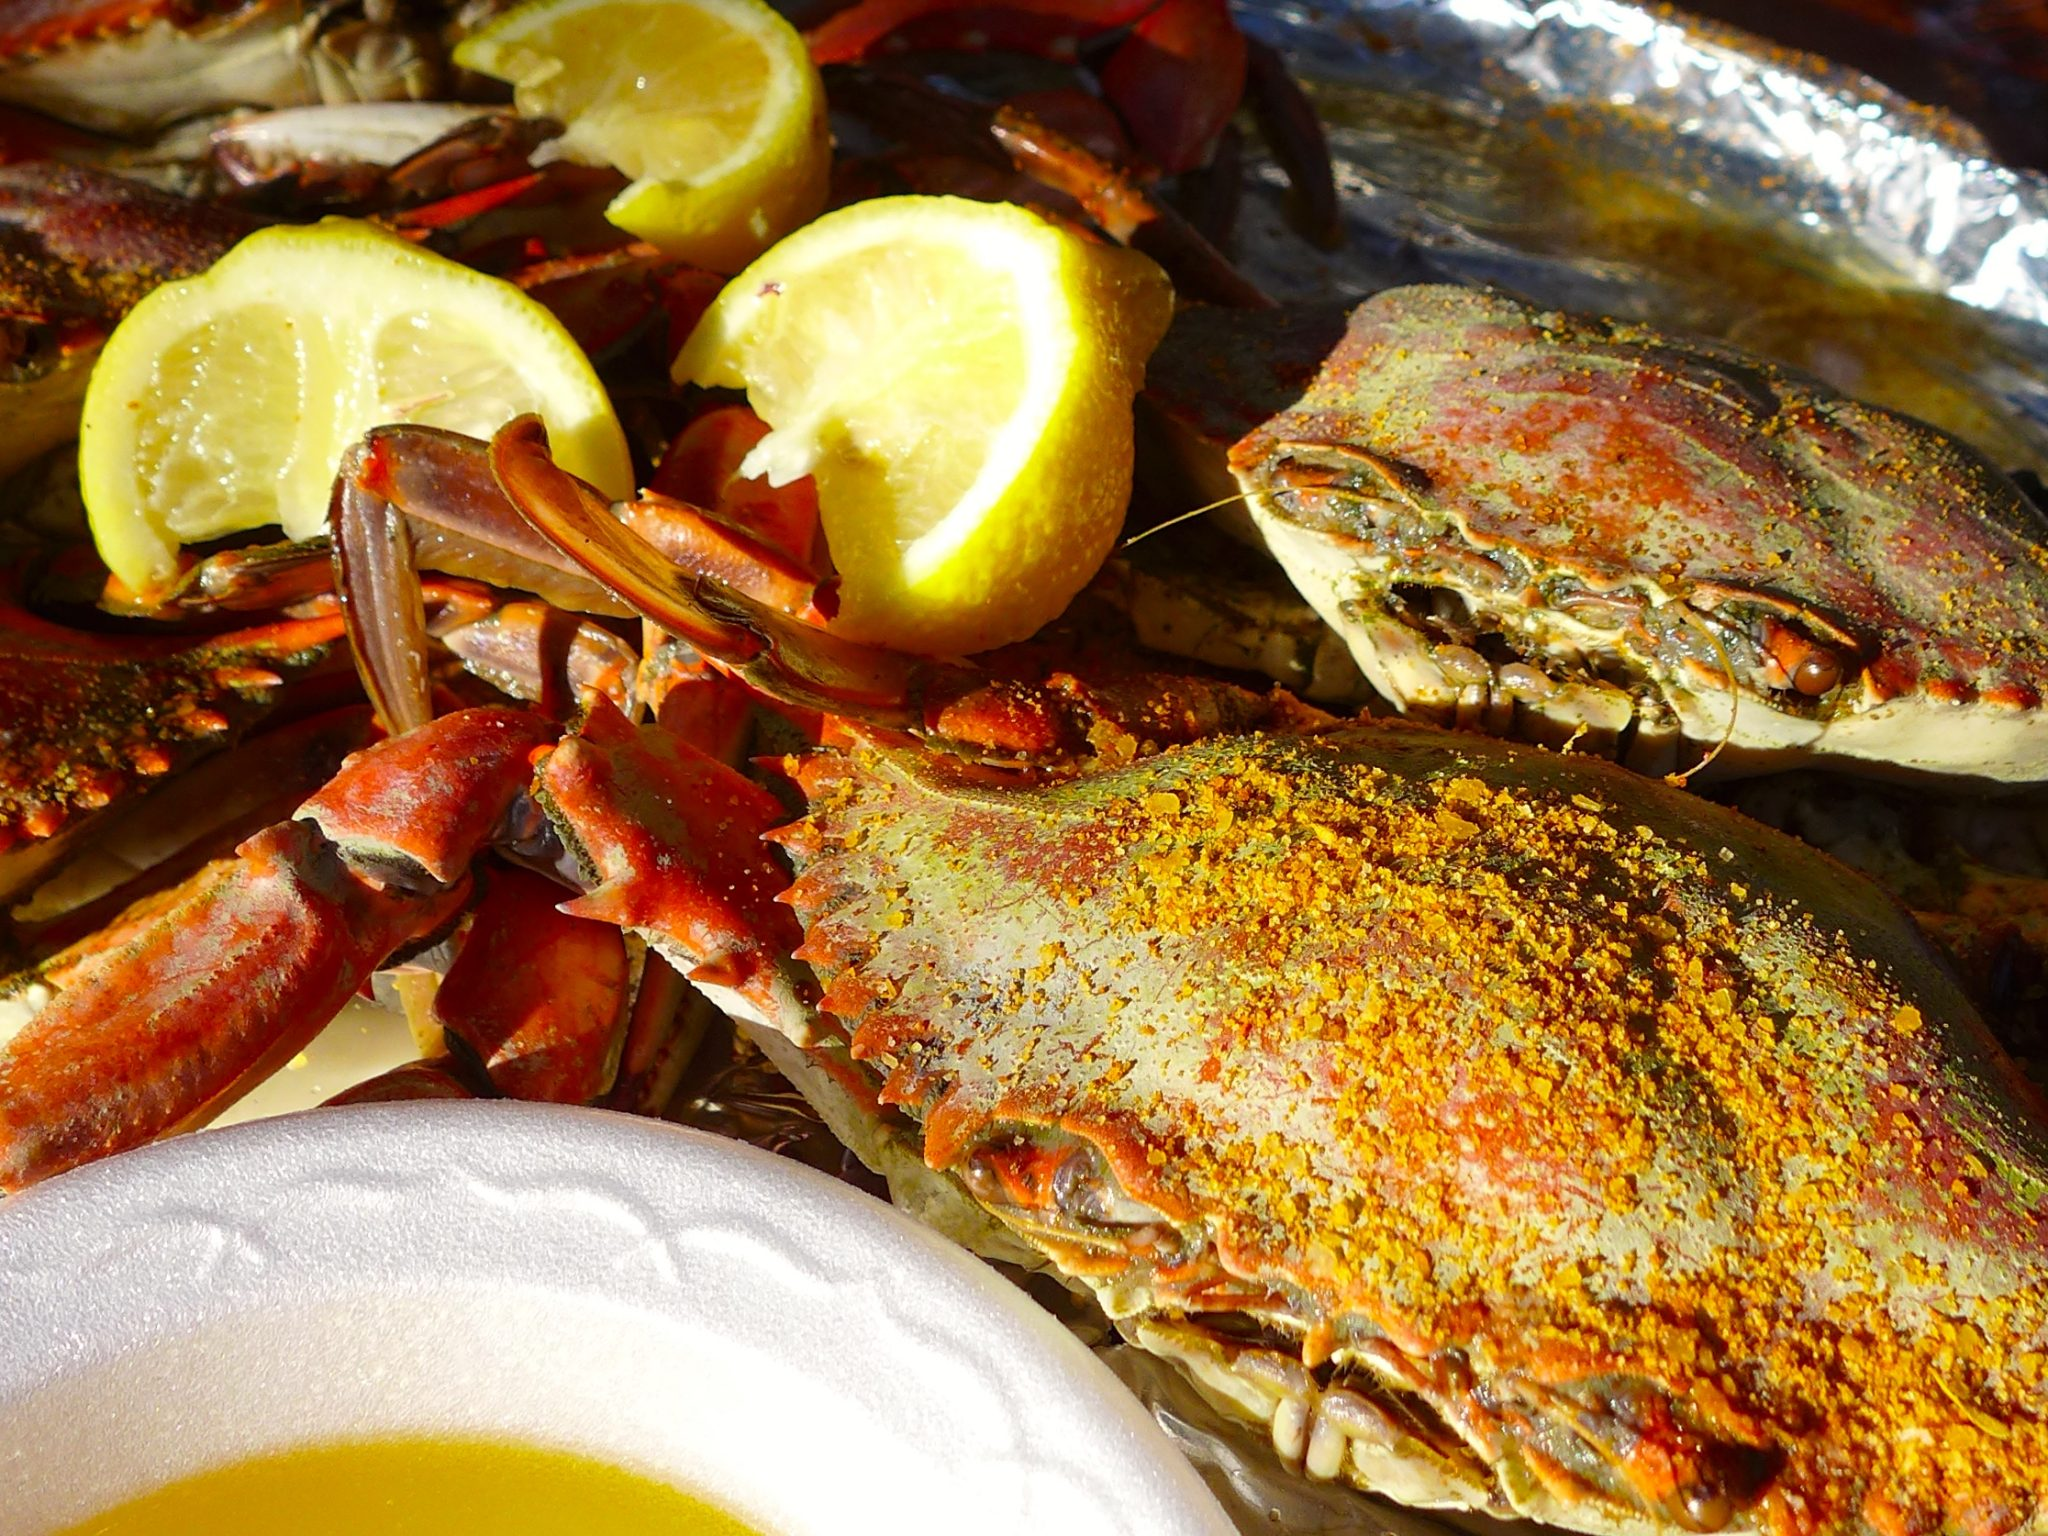 Blue crabs at the Crab Shack Tybee